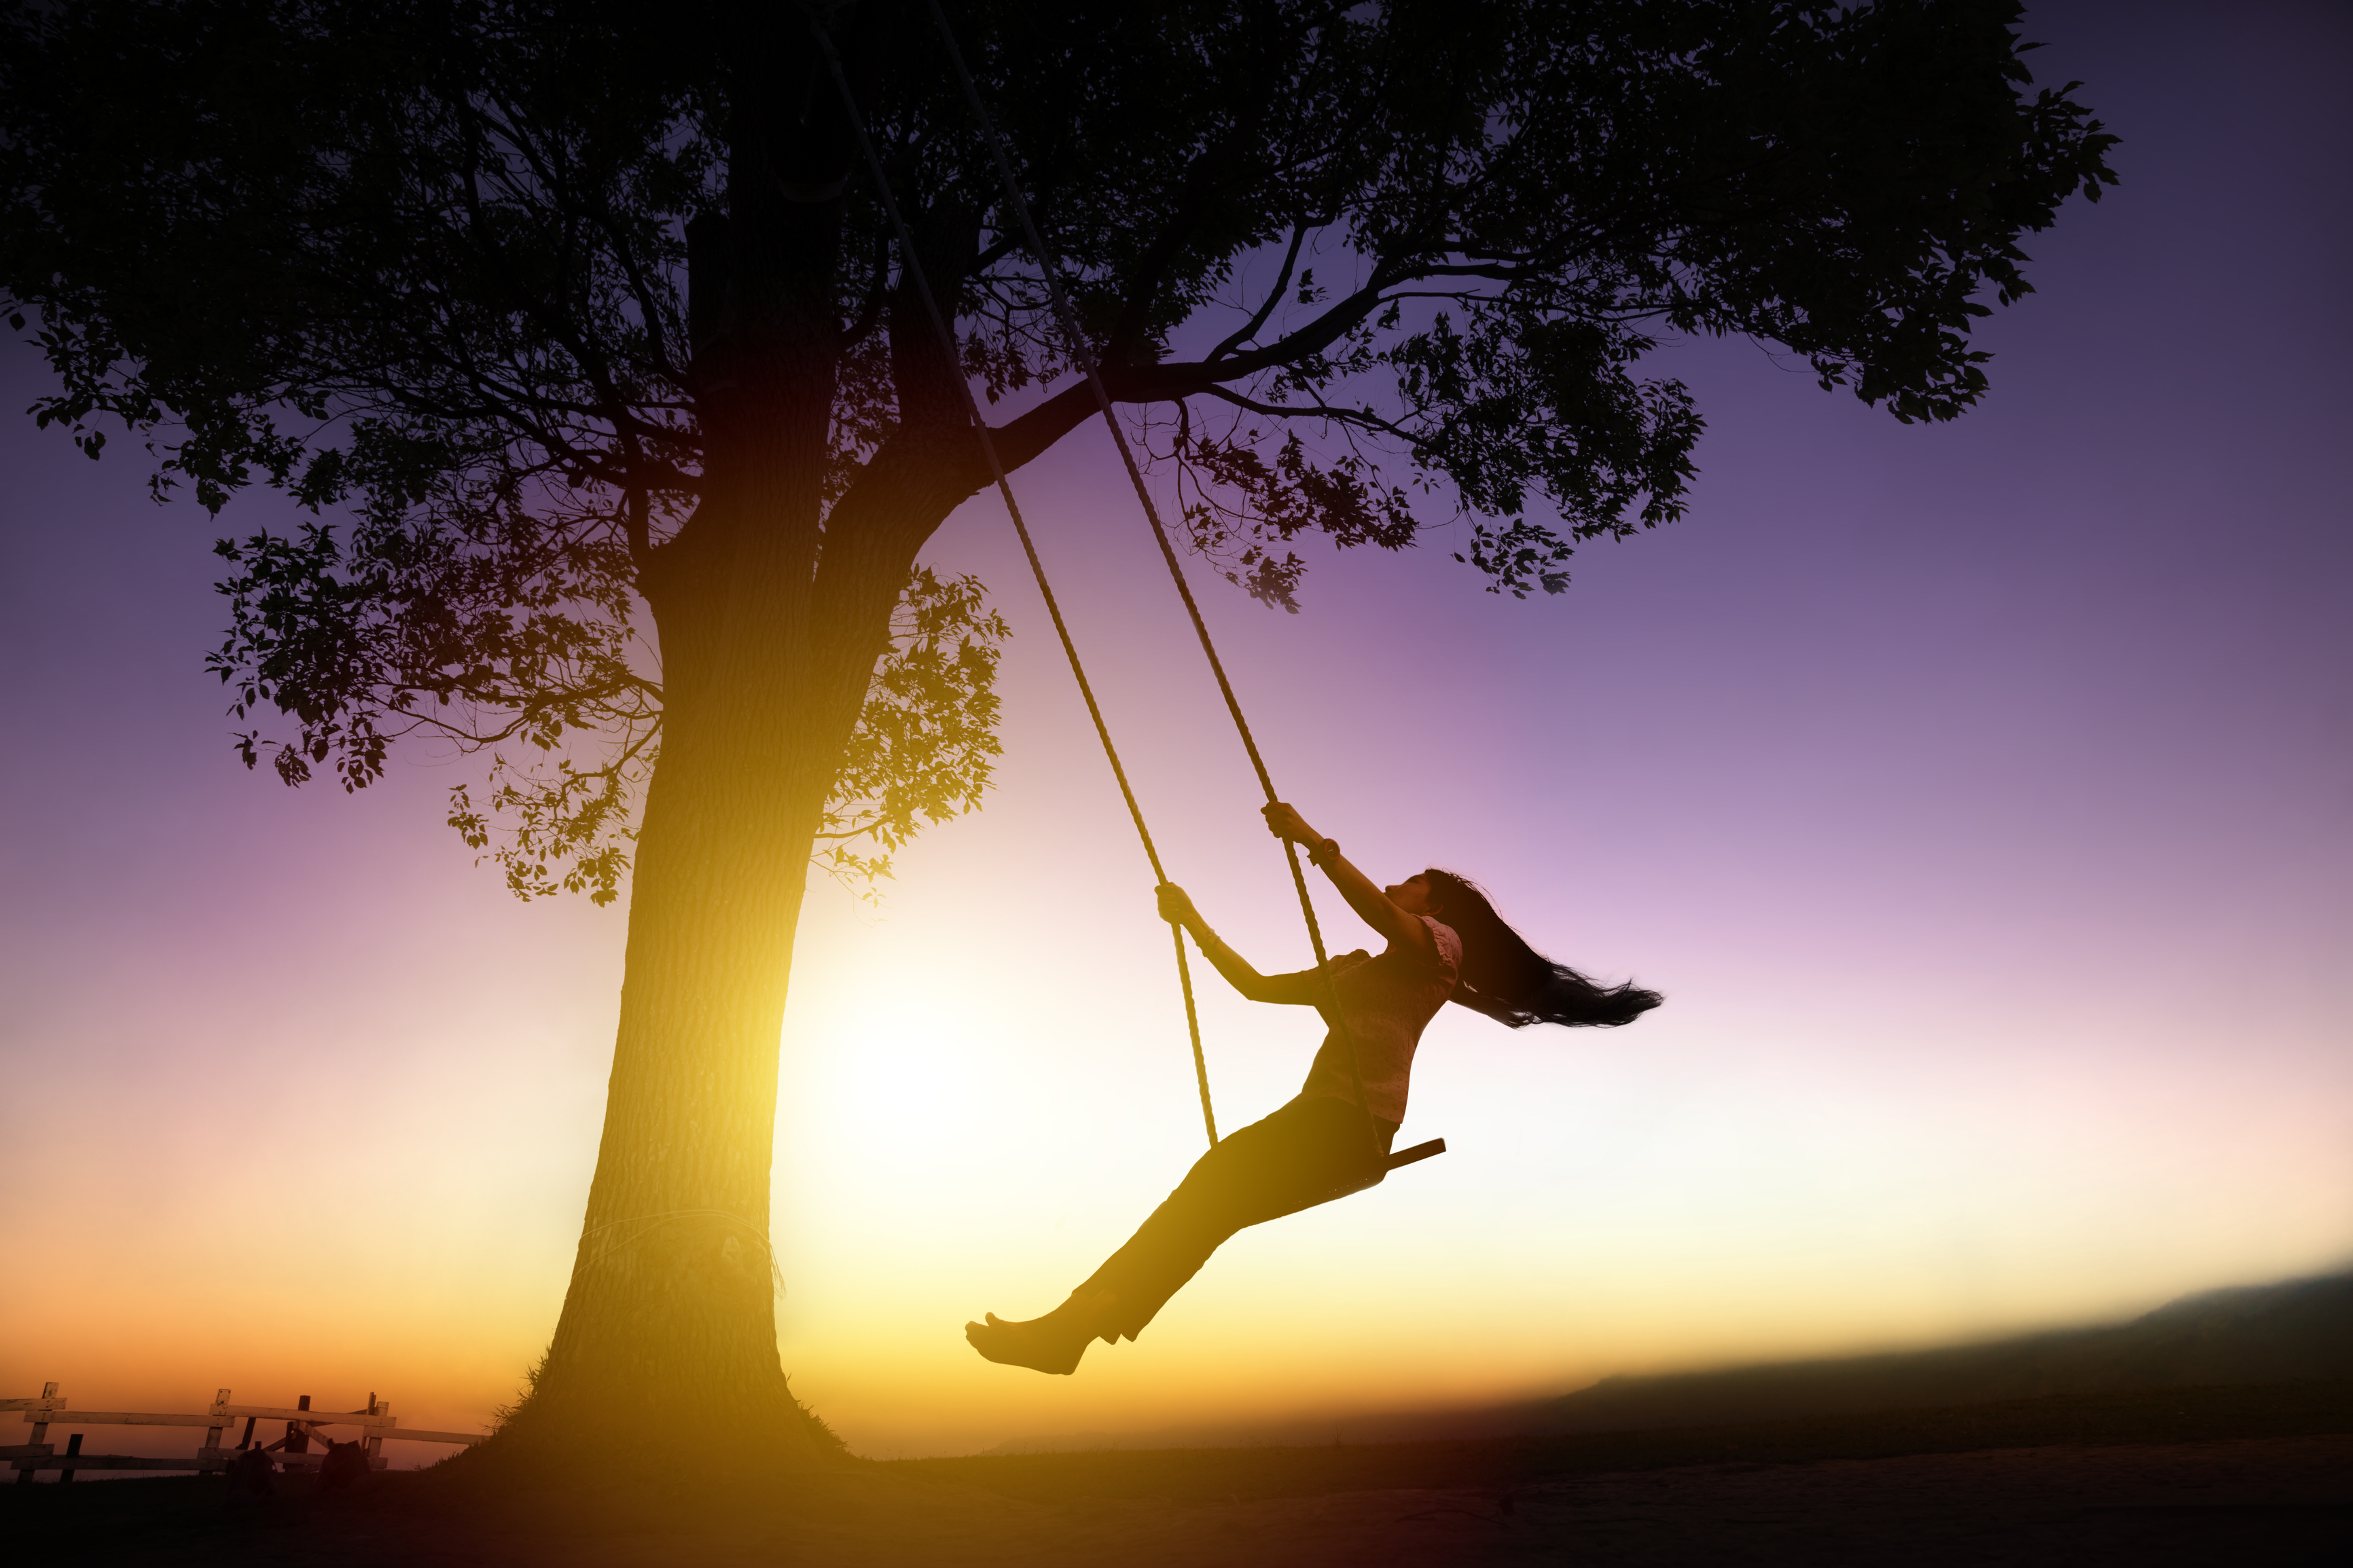 Girl on swing - enjoyment